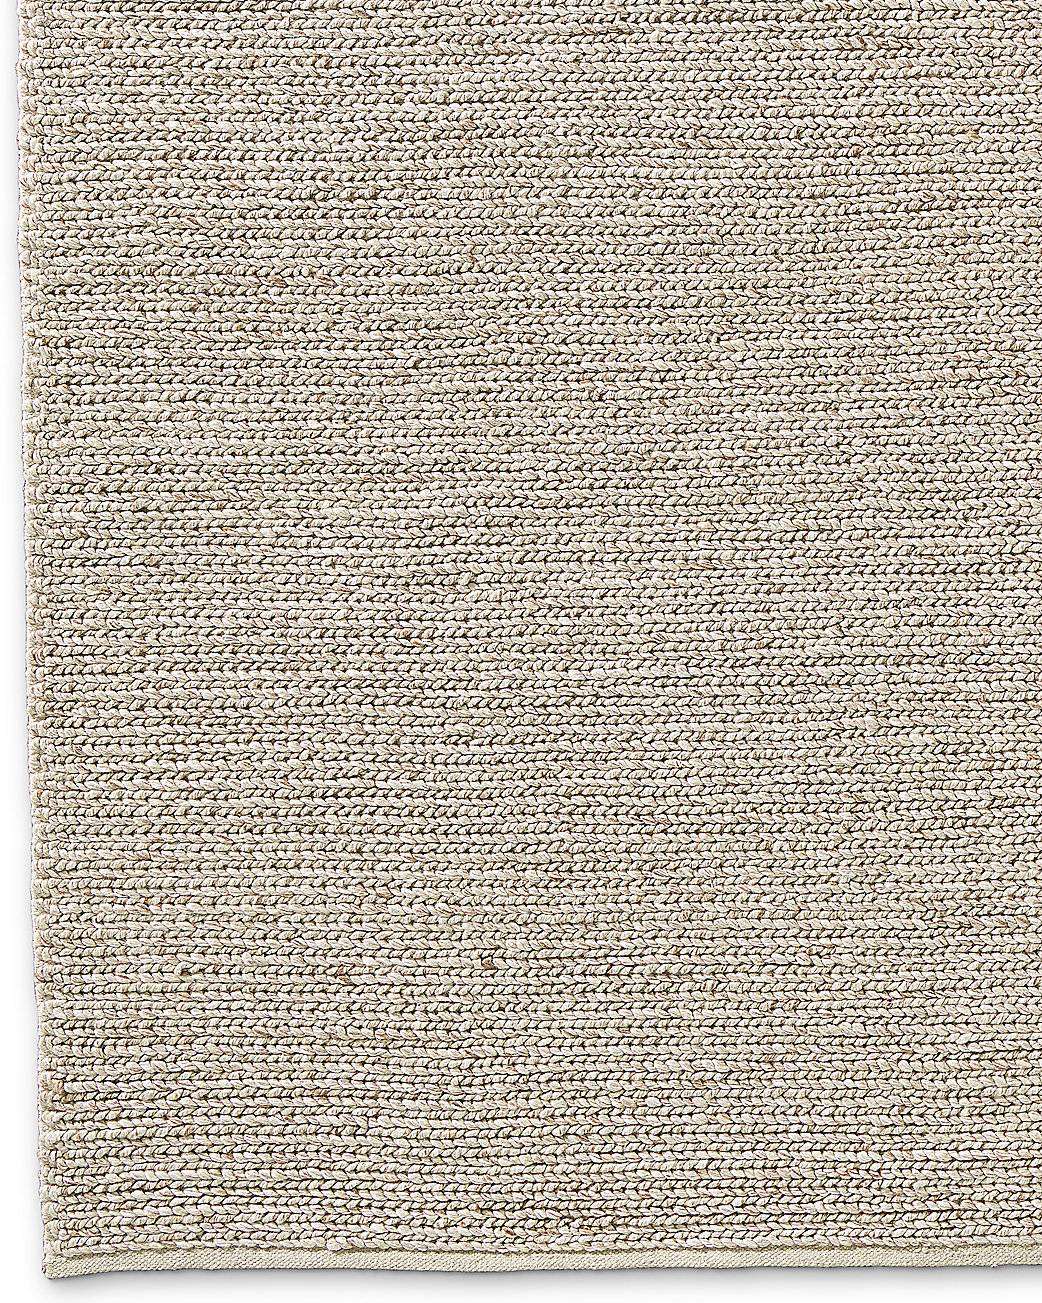 Braided Wool Rug - Marled